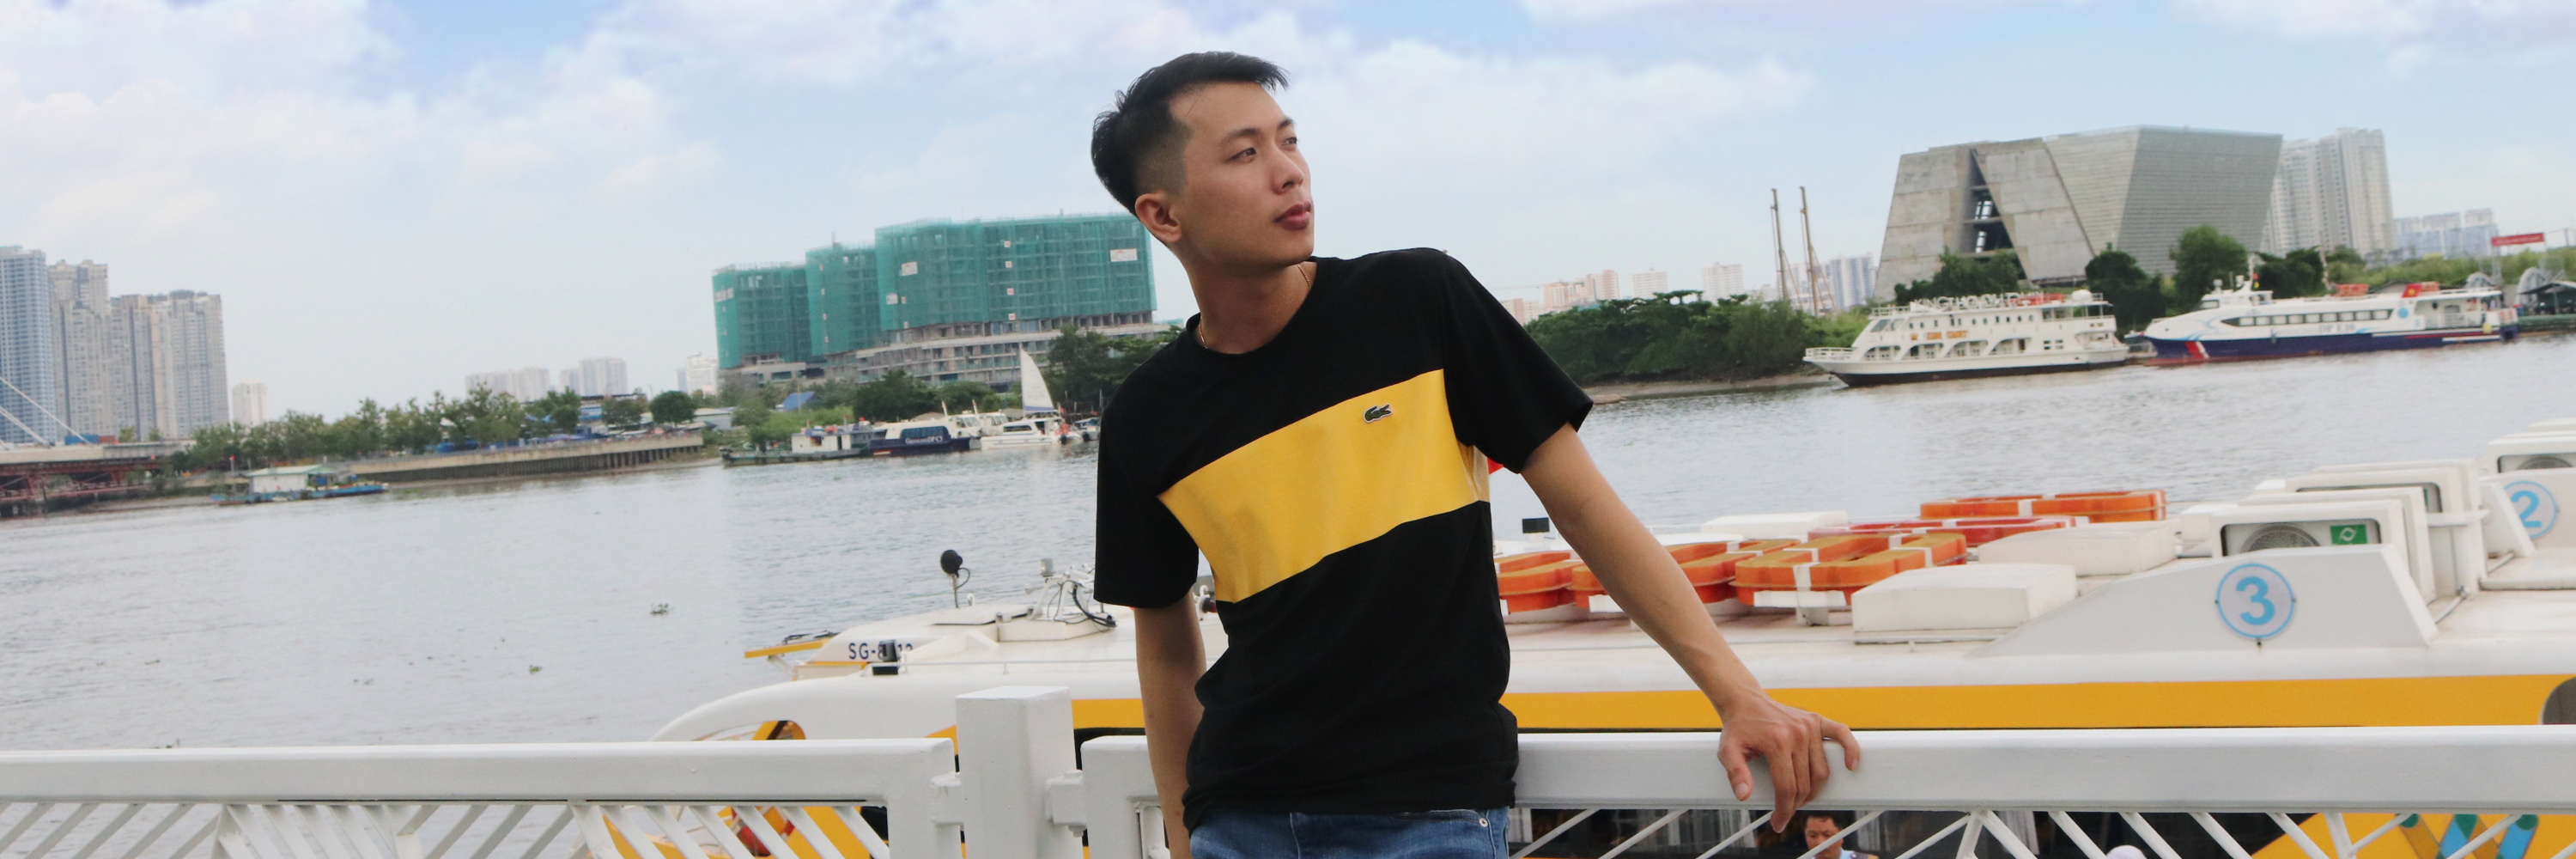 https://gody.vn/blog/thaithaotran17073366/post/waterbus-sai-gon-long-vong-sai-gon-bang-duong-thuy-chi-voi-15k-7576